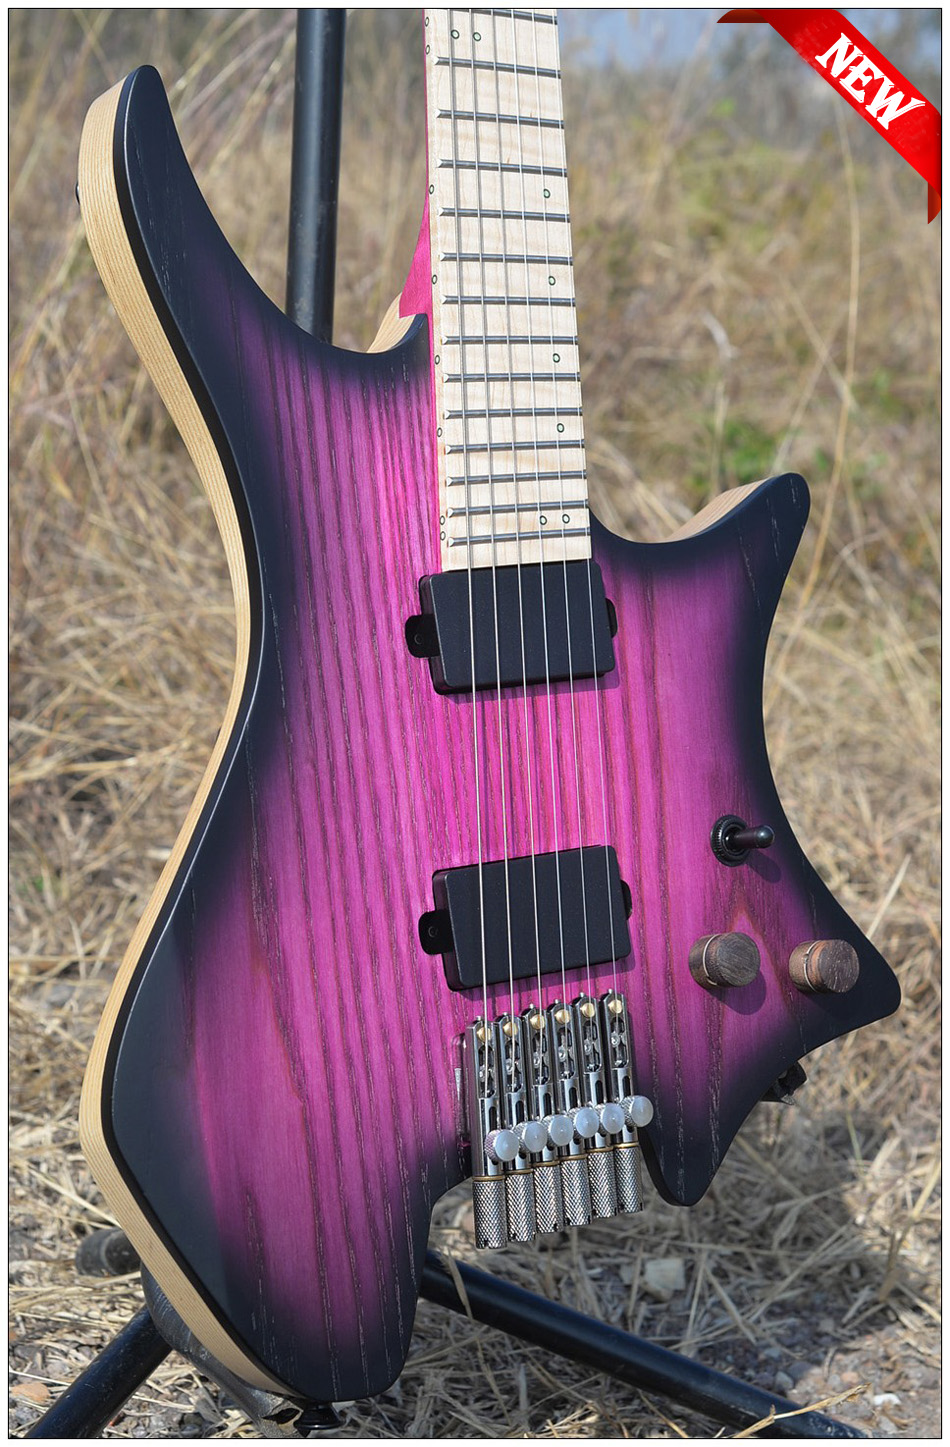 2018 New NK Headless guitar Fanned Fret guitars steinberger style Model Purple burst Color Flame maple Neck Guitar free shipping цена